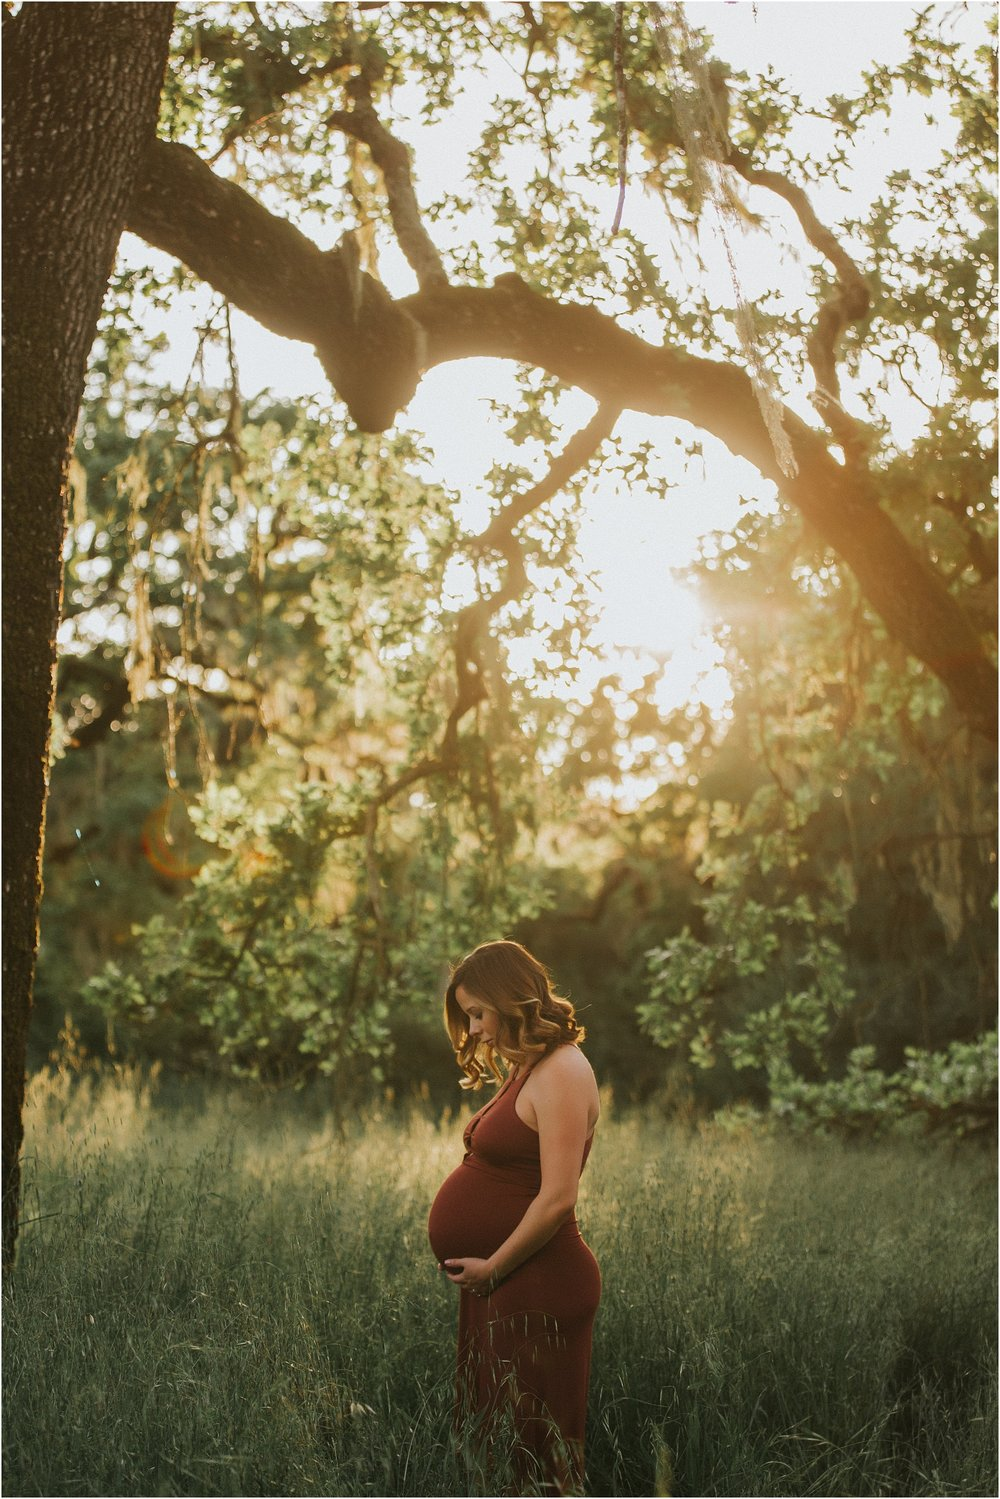 www.daniellenavratilphotography.com #maternityphotoshoot #maternityphotos #maternity #maternitysession #maternitypictures #pregnancy #maternity #sonomacountyphotographer #sonomacounty  #maternityphotos #maternityphotoshoot #maternitypictures #maternitysession